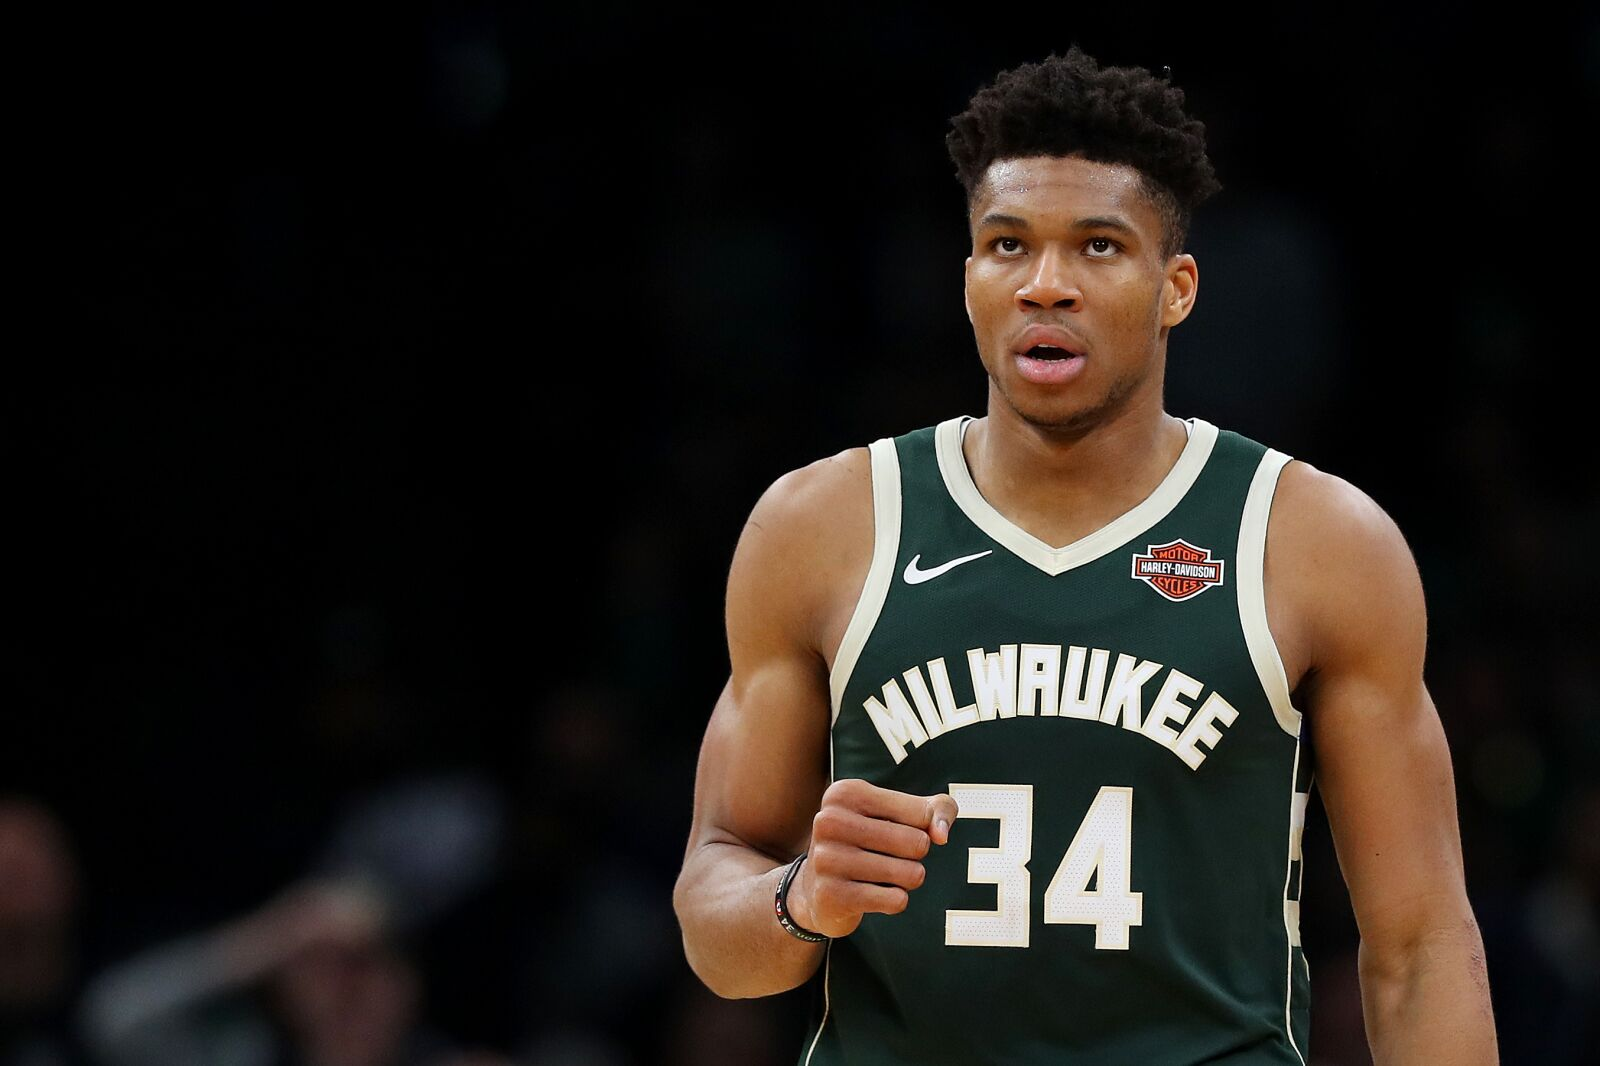 Milwaukee Bucks: Can they repeat clutch time success in 2019-20 season?